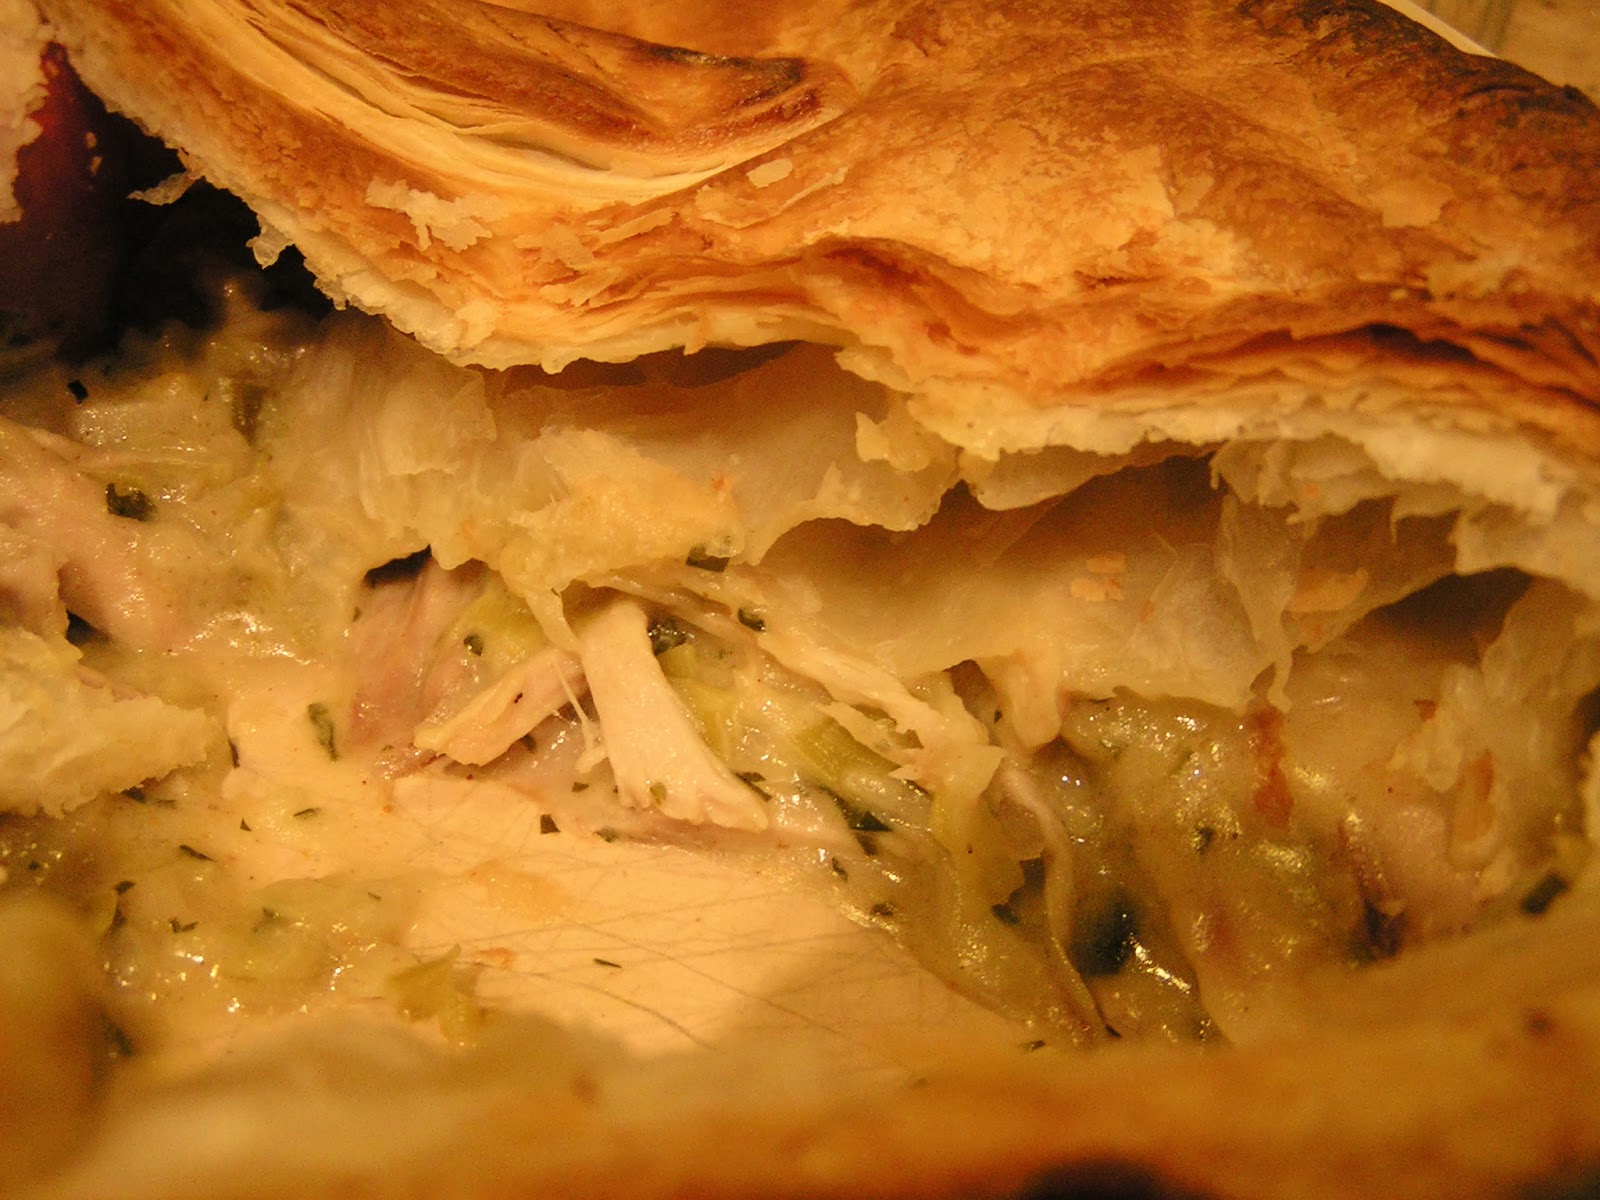 101 uses for a dead chicken - #1 Chicken, leek and parsley pie